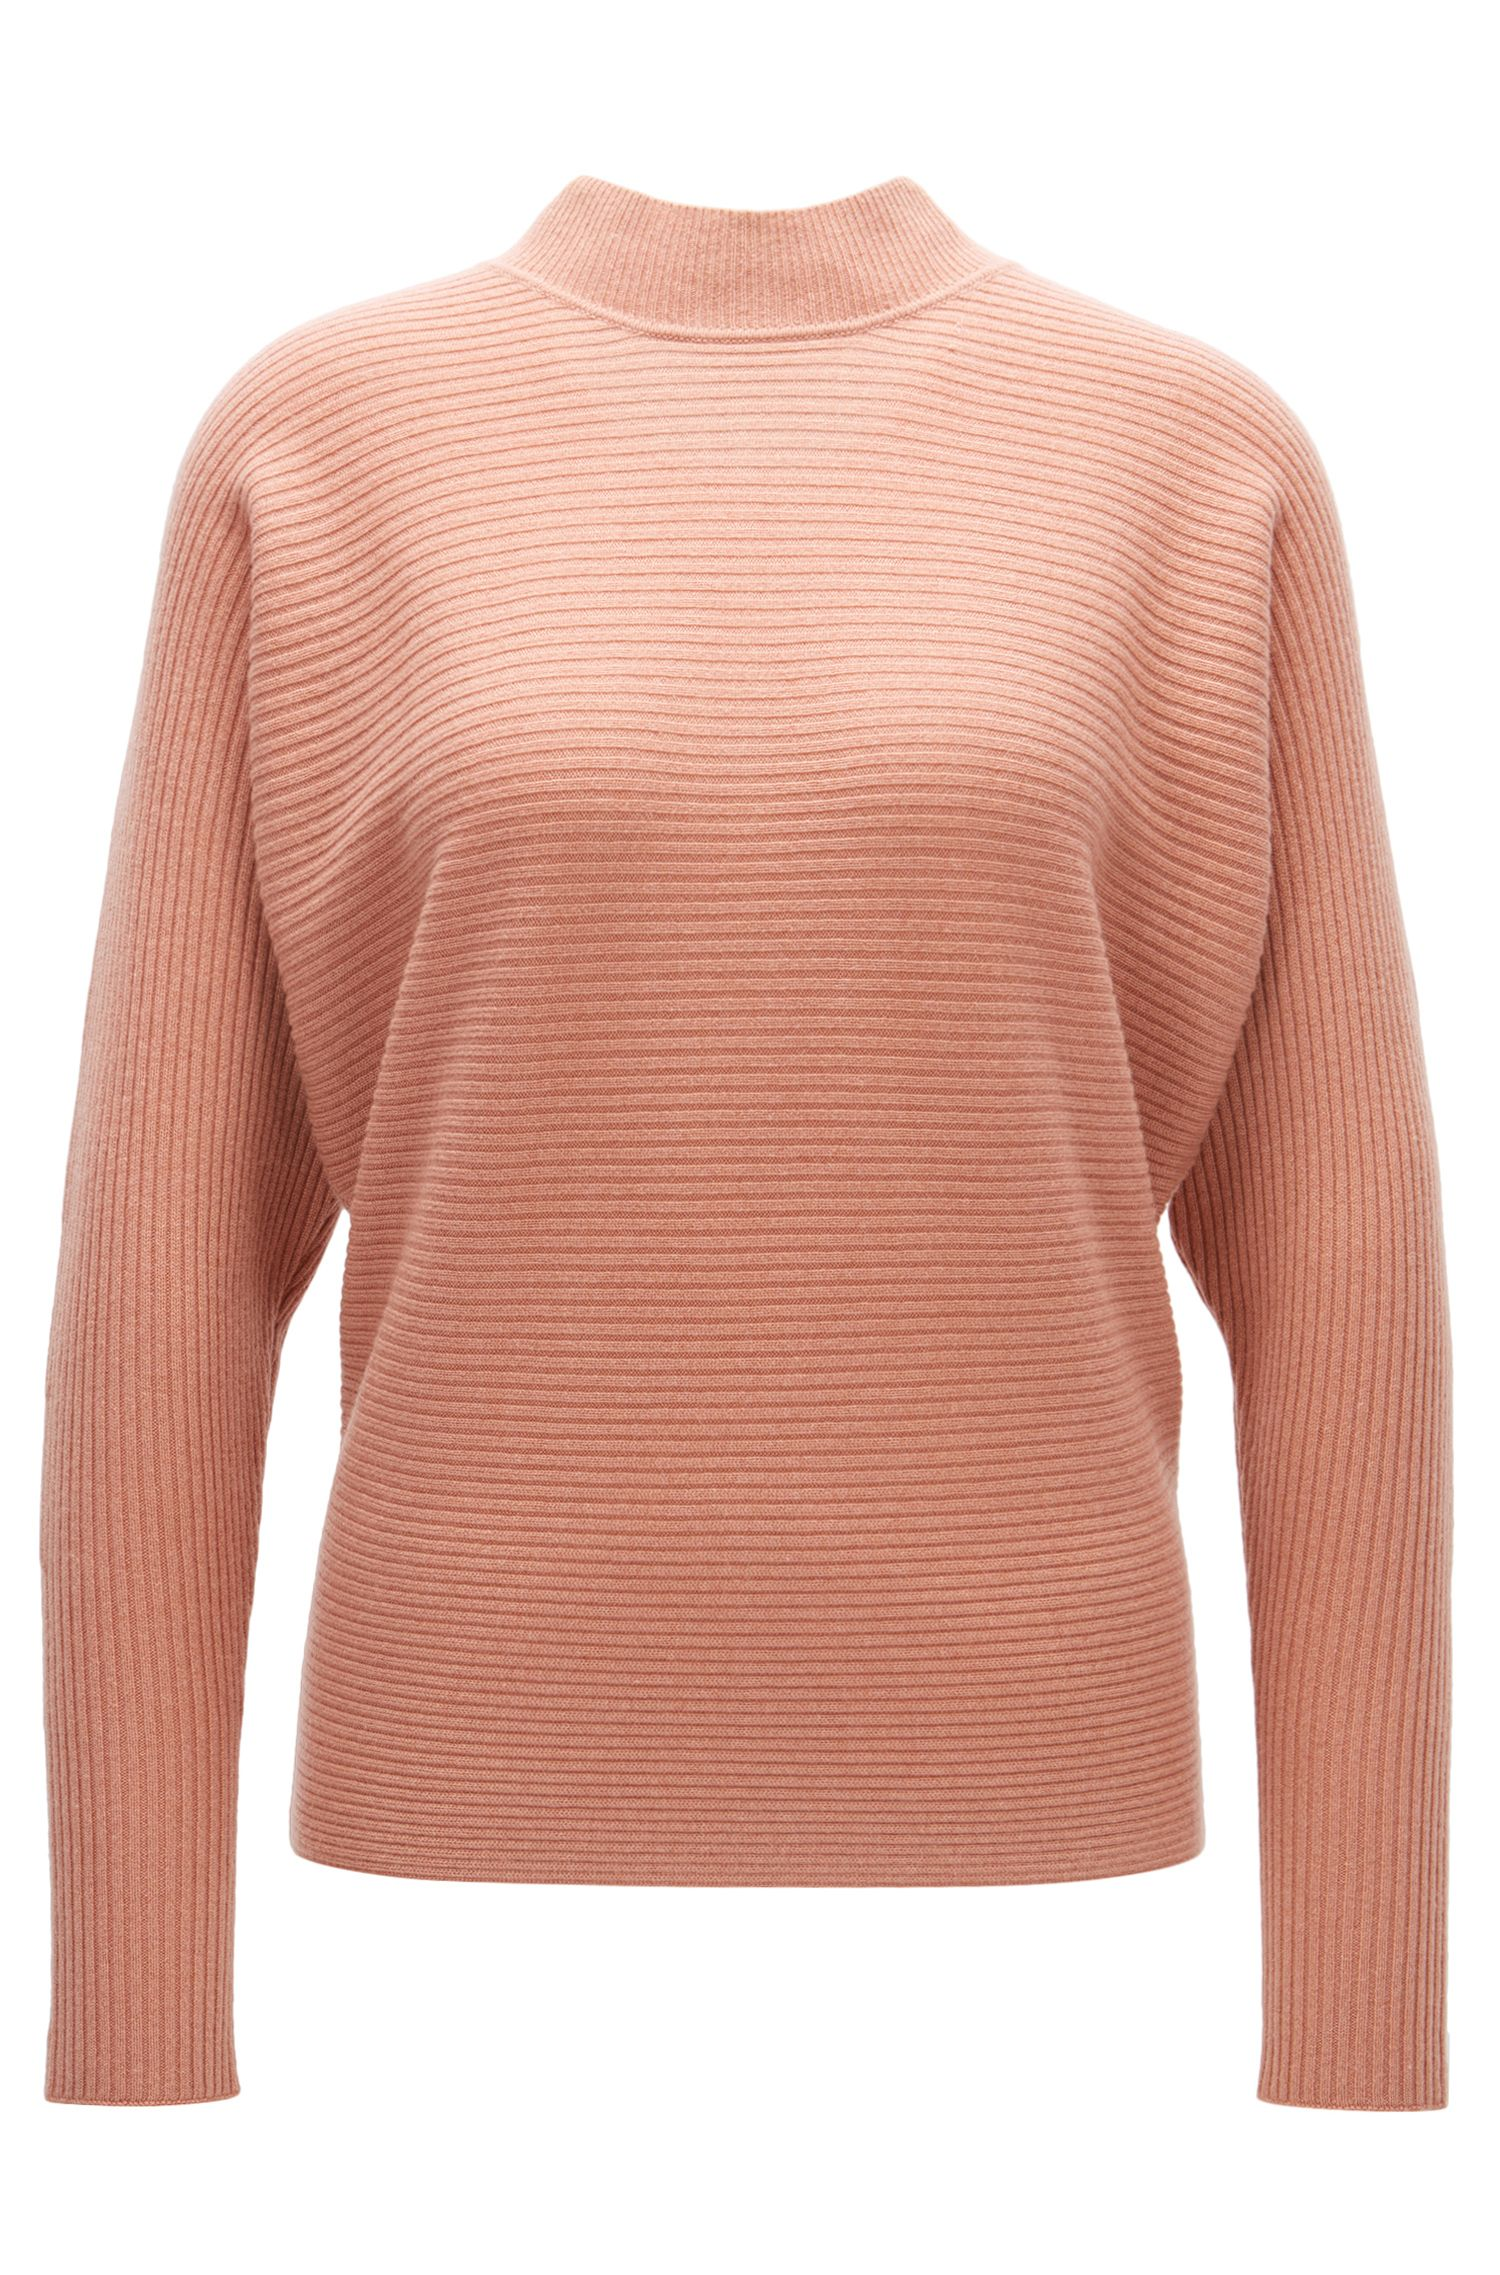 Maglione a coste relaxed fit in puro cashmere